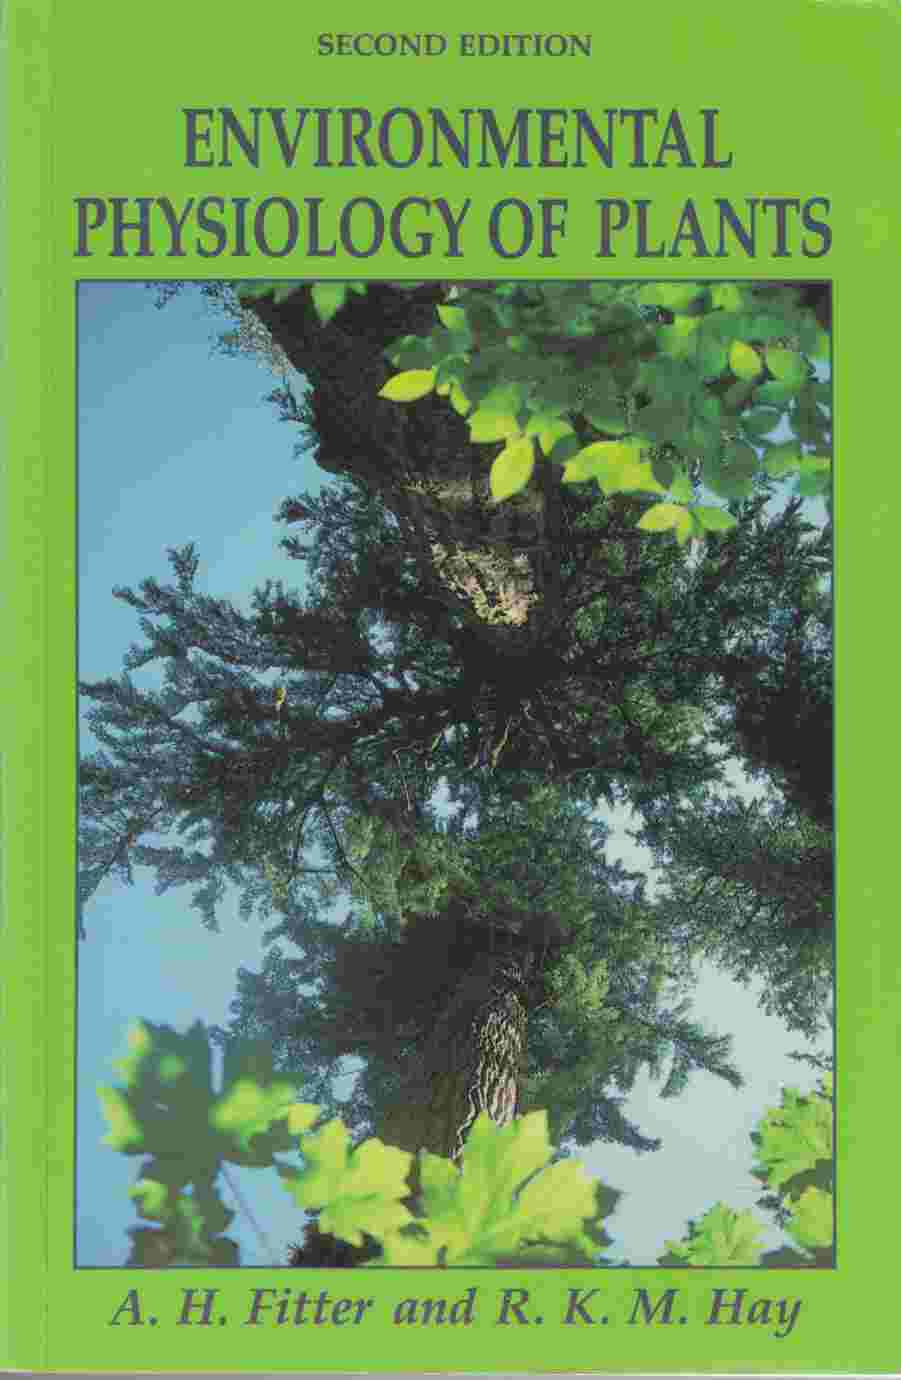 Image for Environmental Physiology of Plants Second Edition